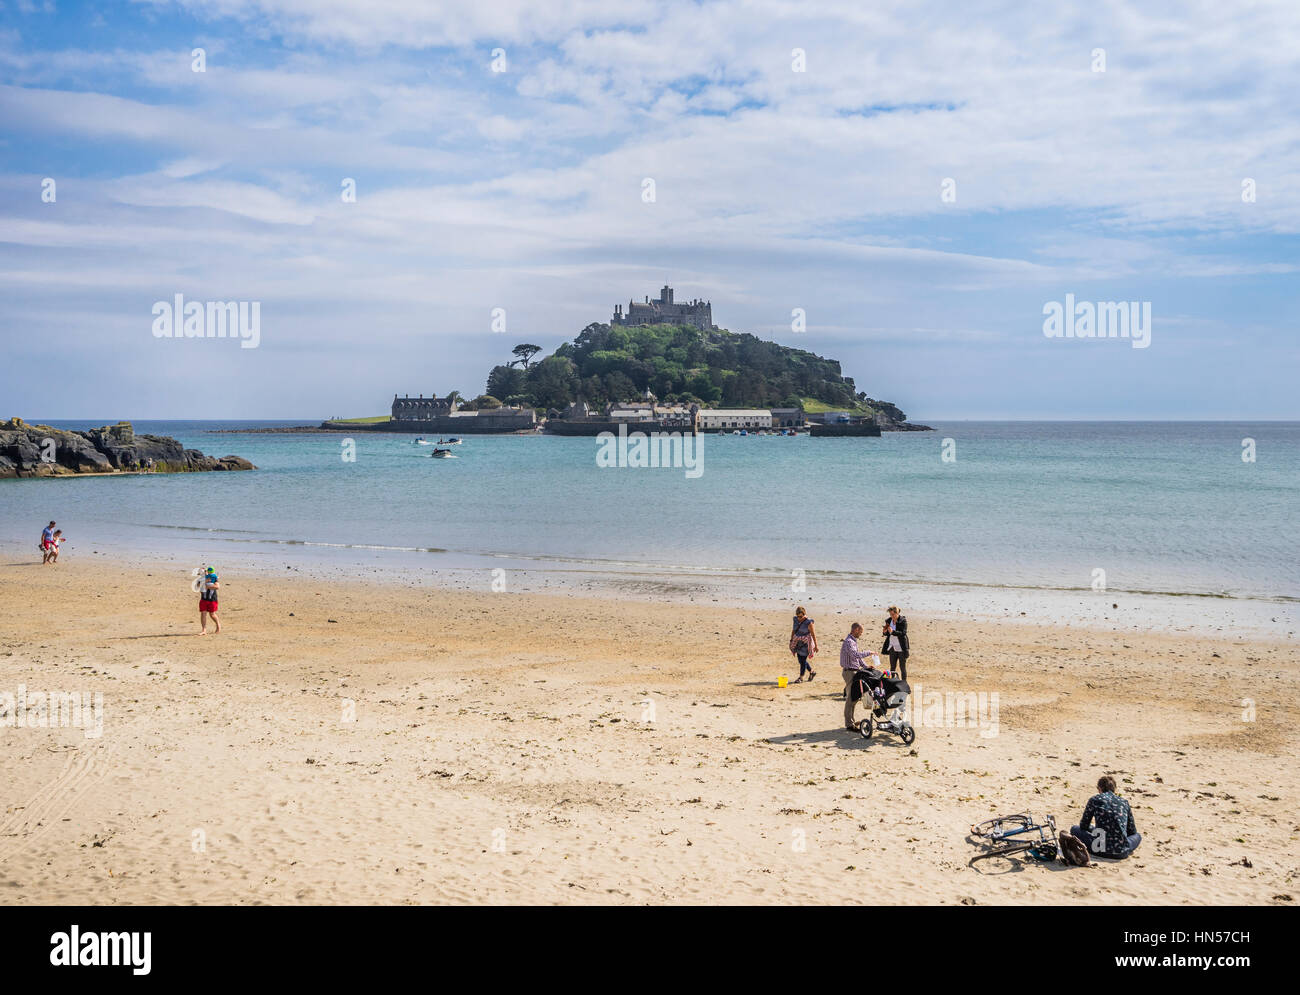 United Kingdom, South West England, Cornwall, Marazian, view of St. Michael's Mount from Marazion Beach Stock Photo